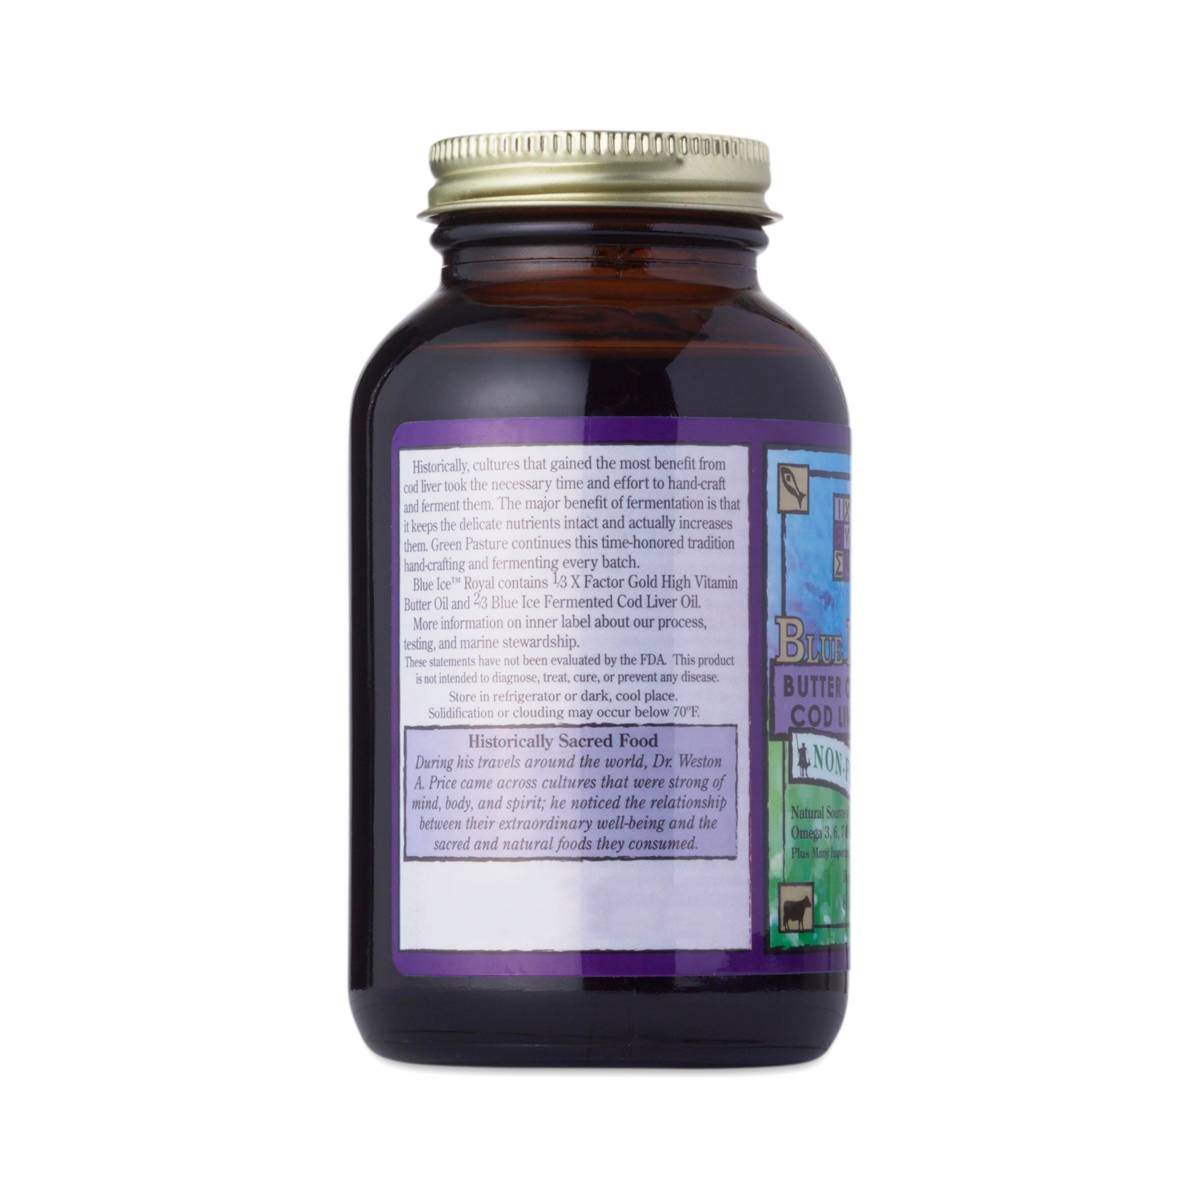 Non Flavored Royal Butter Fermented Cod Liver Oil